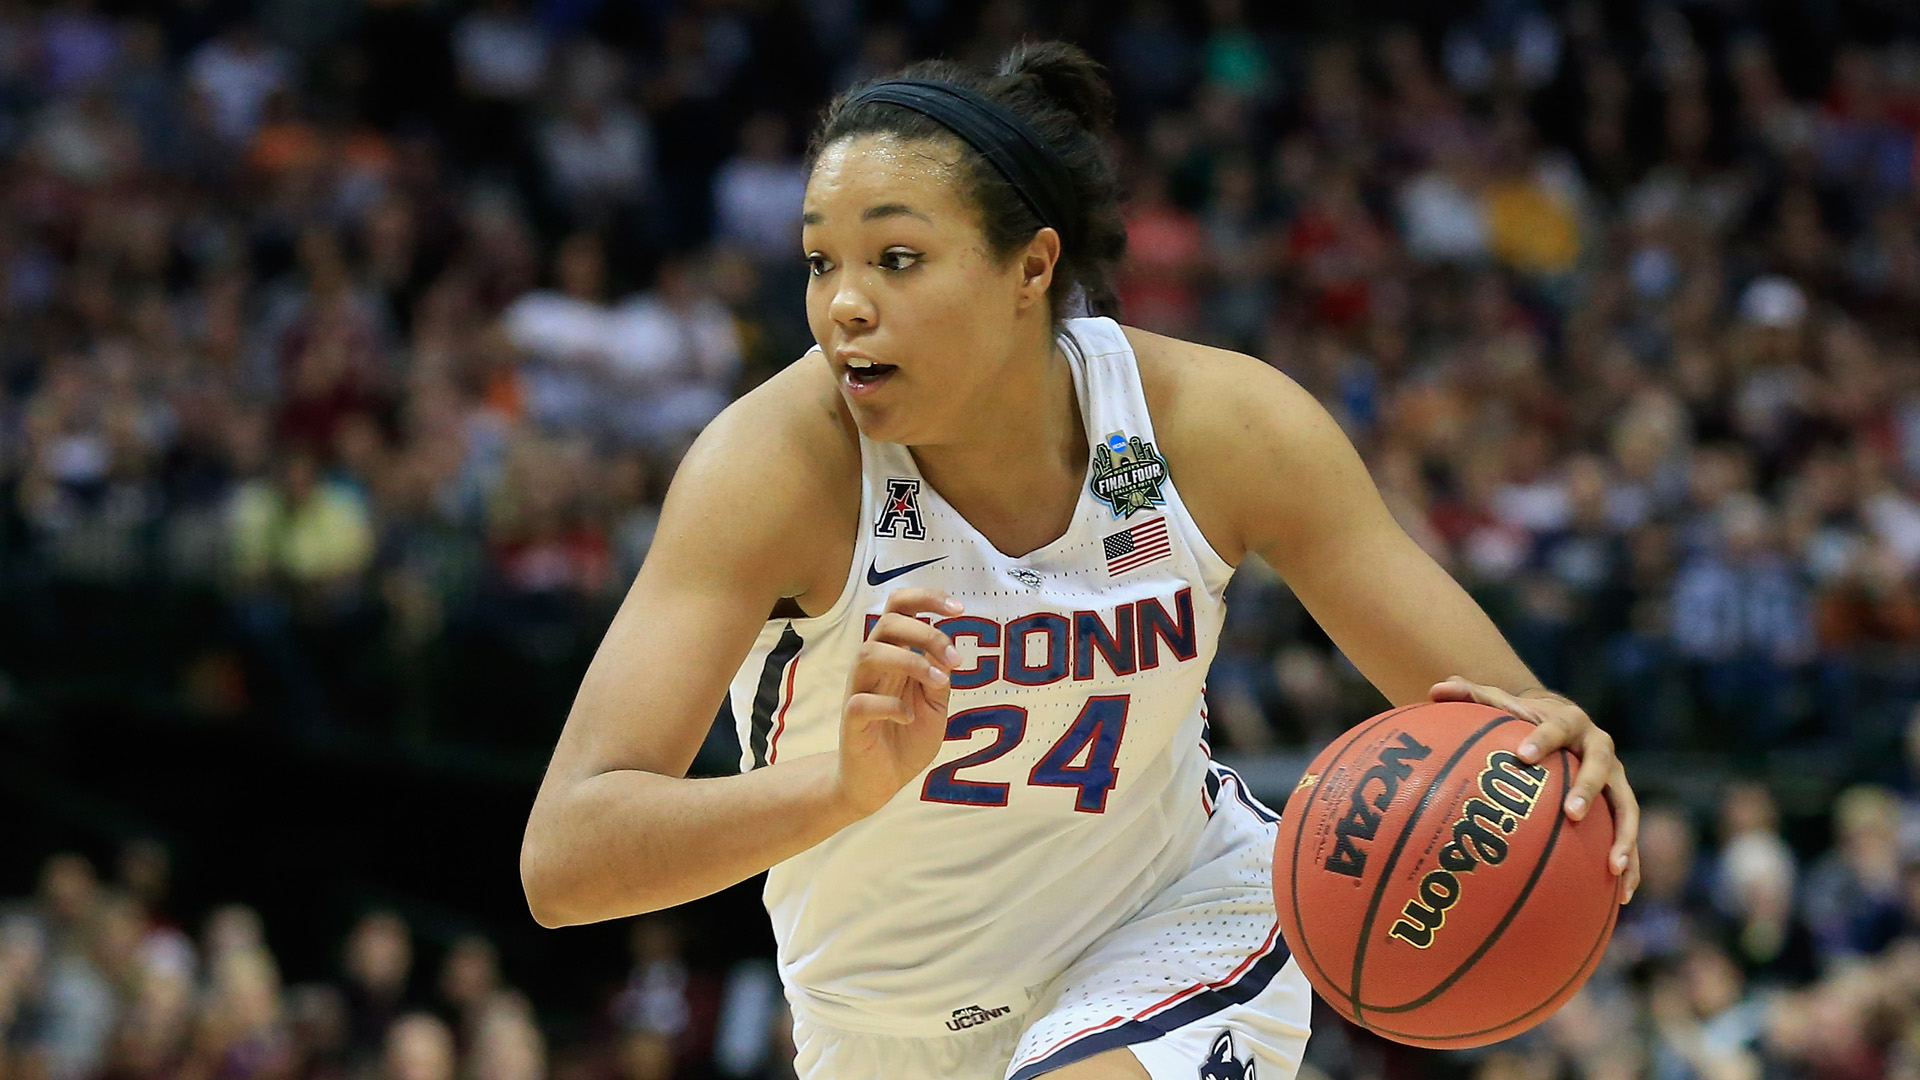 Yep, UConn dropped 140 points in an opening-round victory